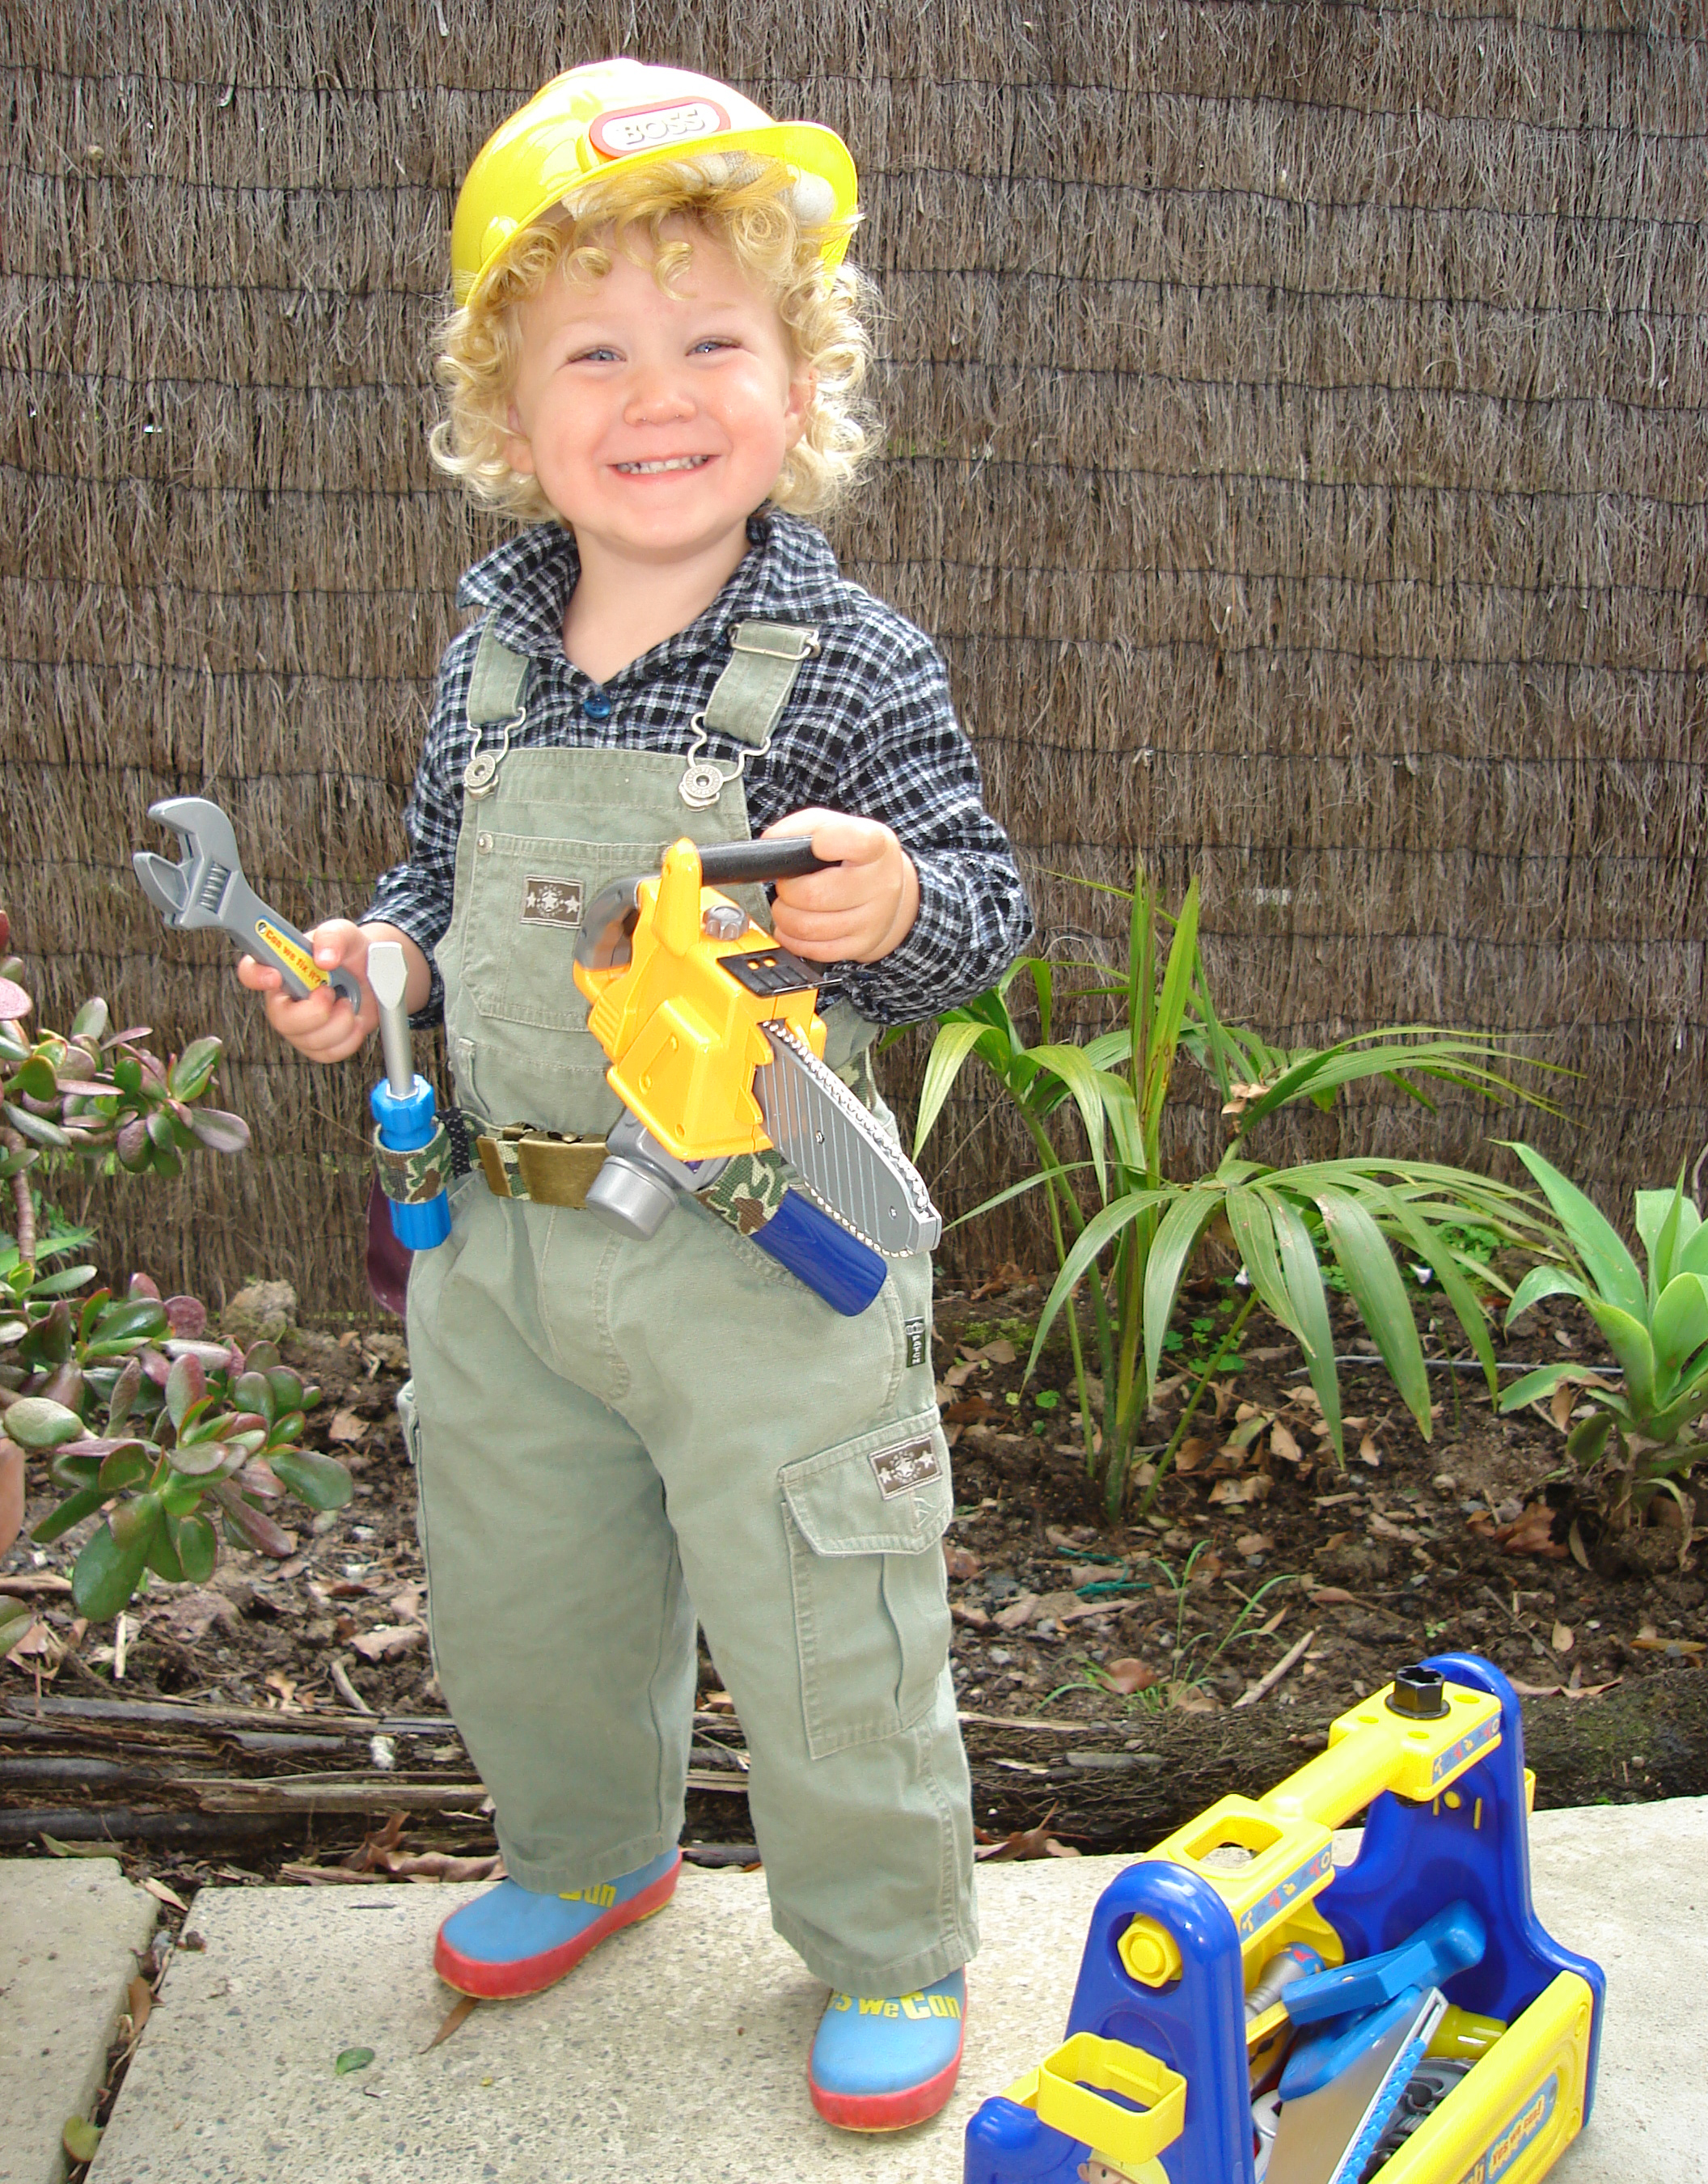 Happy Halloween from Bob the Builder!